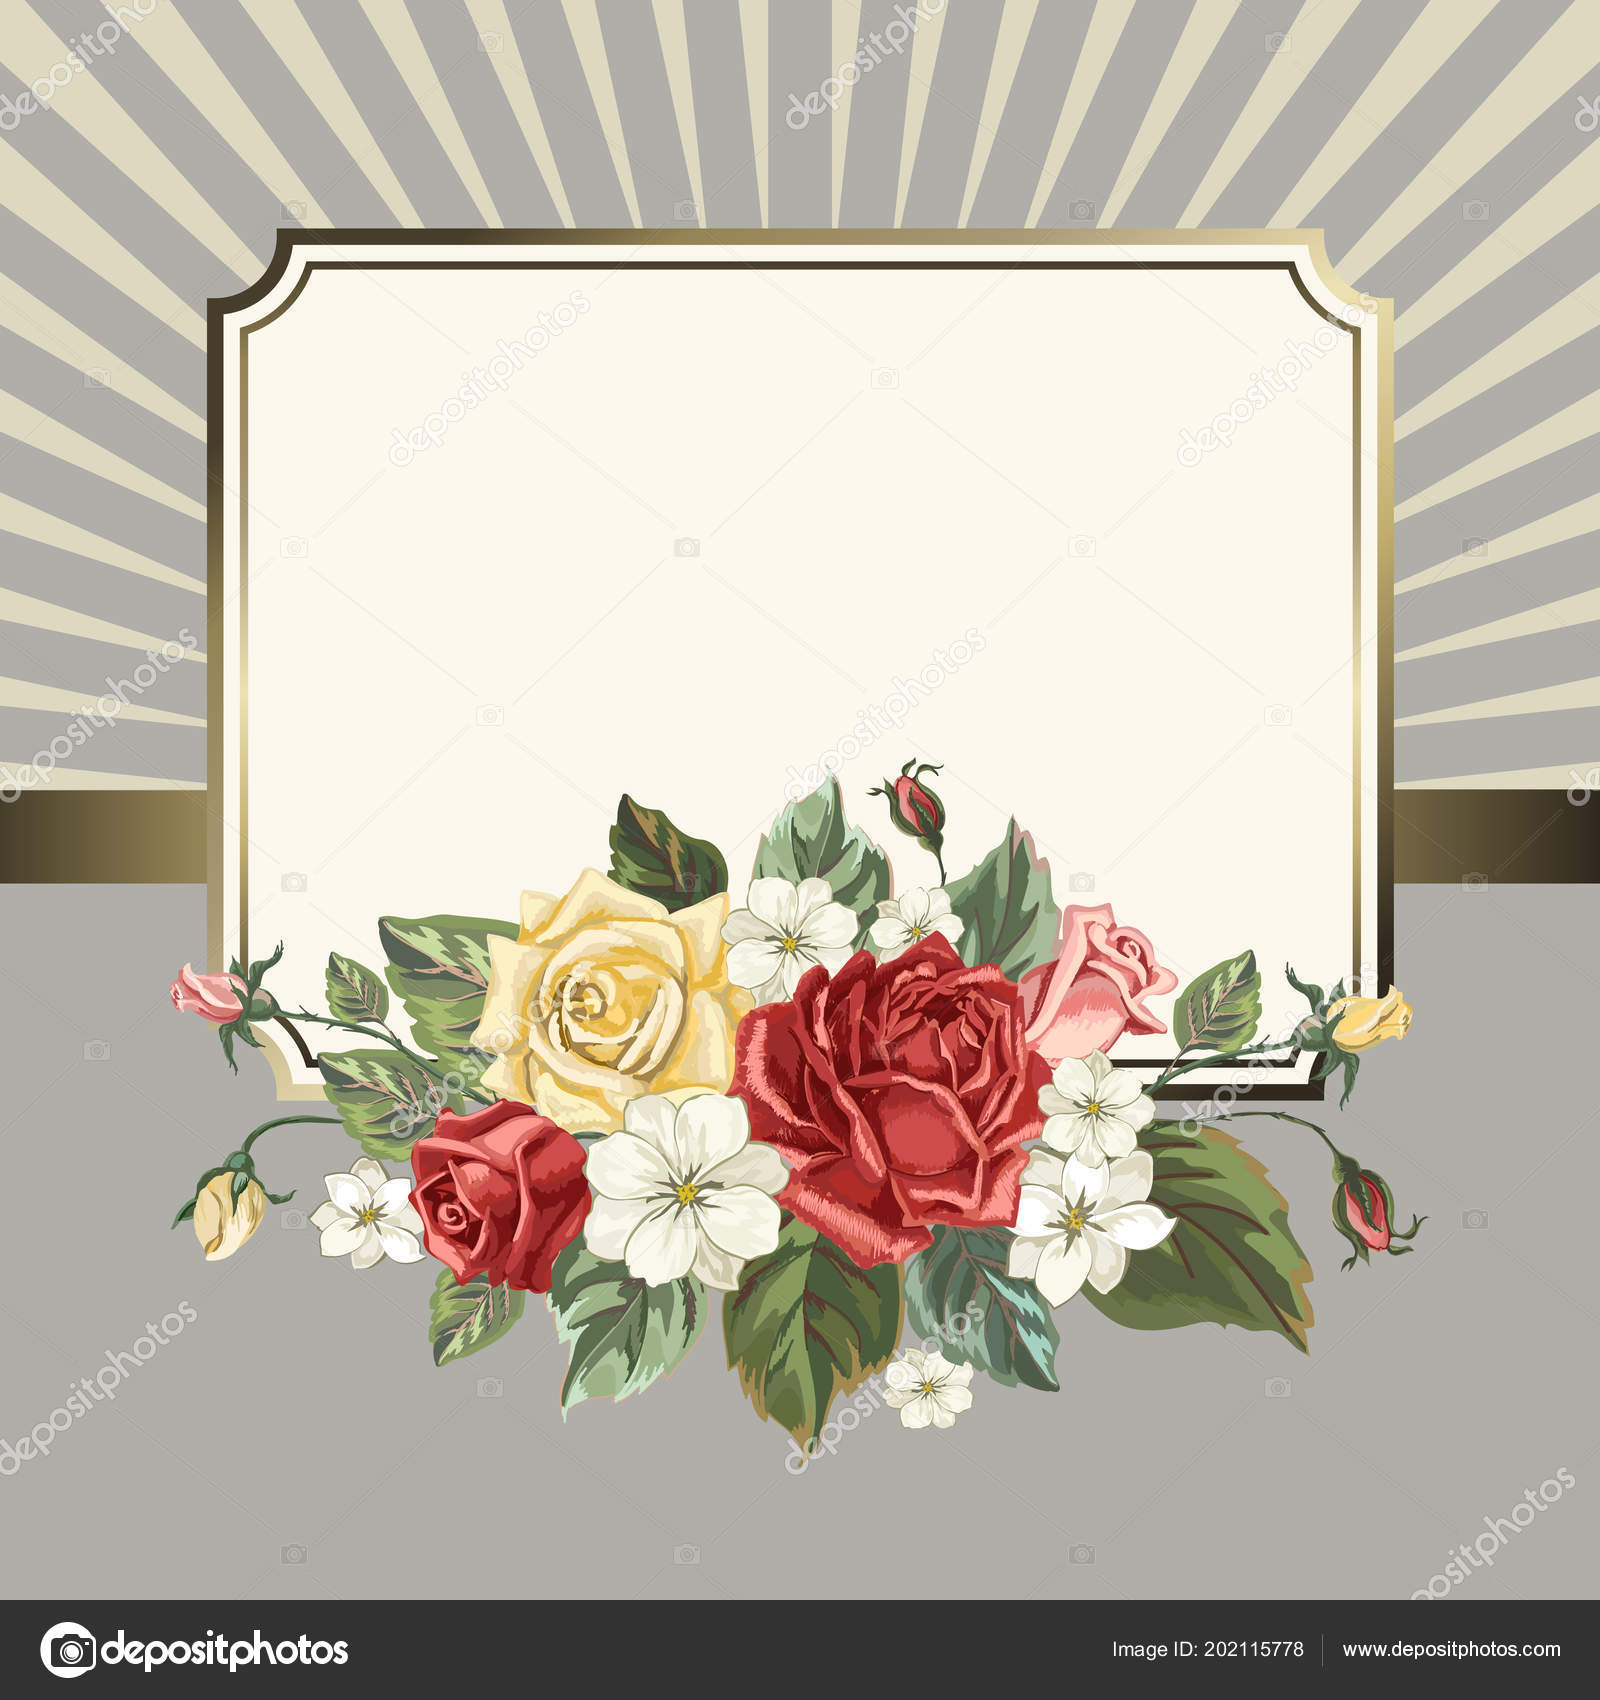 card roses vintage style invitation card flowers wedding day